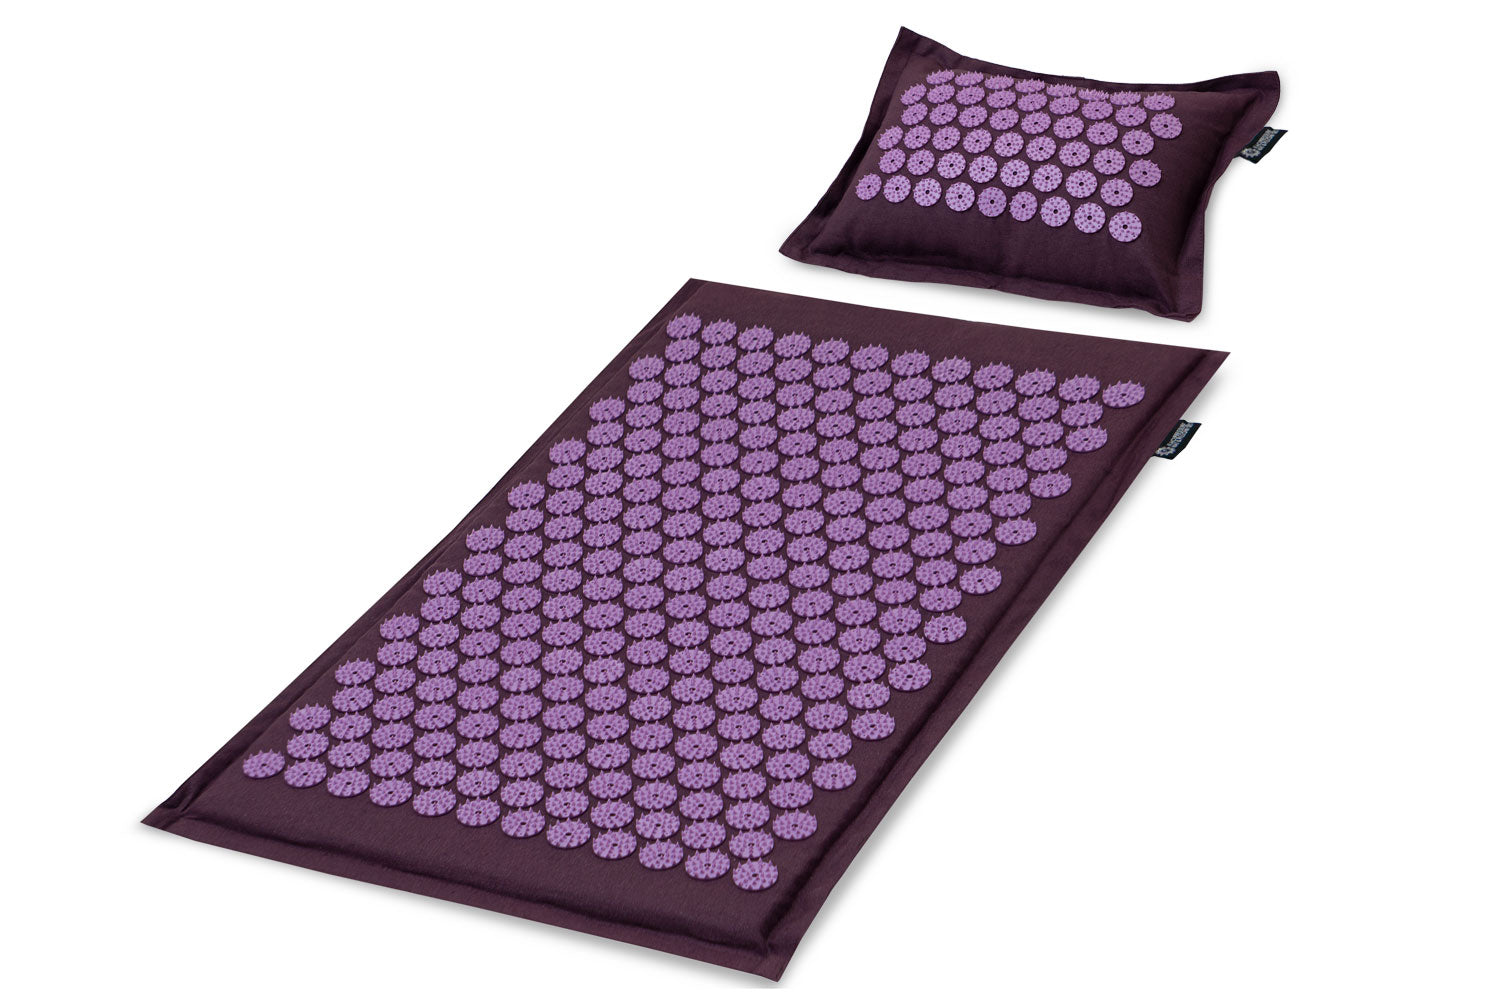 Royal Lilac Ki Acupressure Mat and Pillow Set